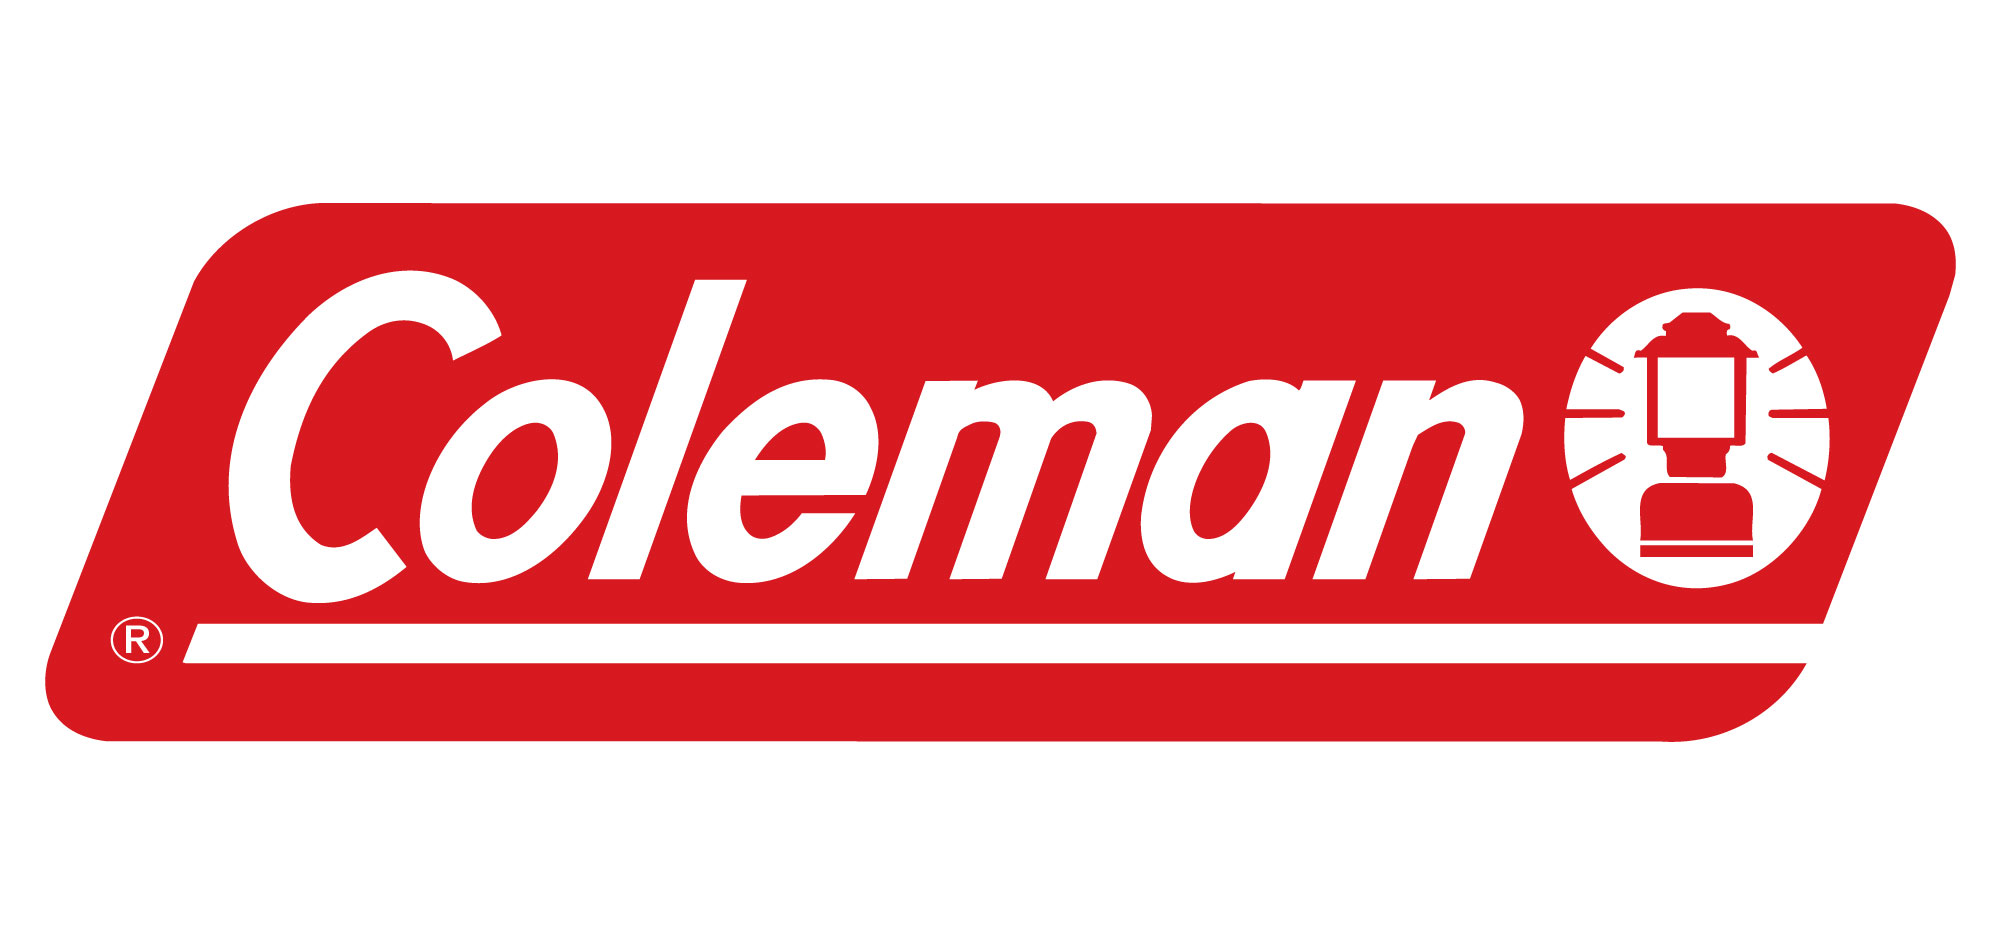 Coleman Logo Wallpaper